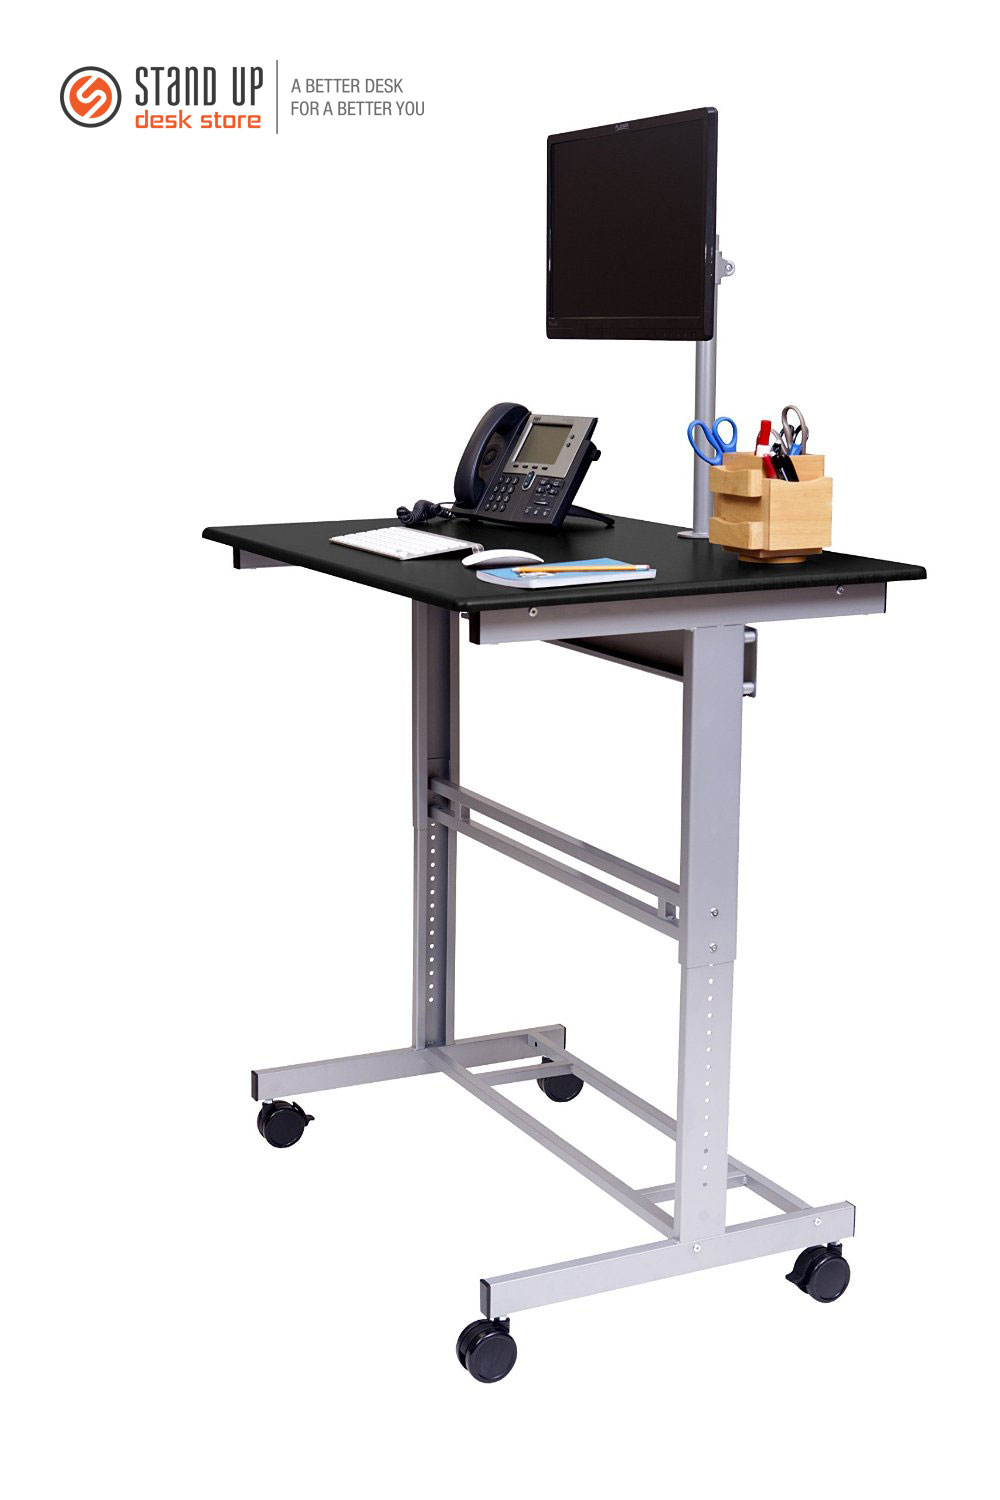 stand-up-desk-store-brand-comparison